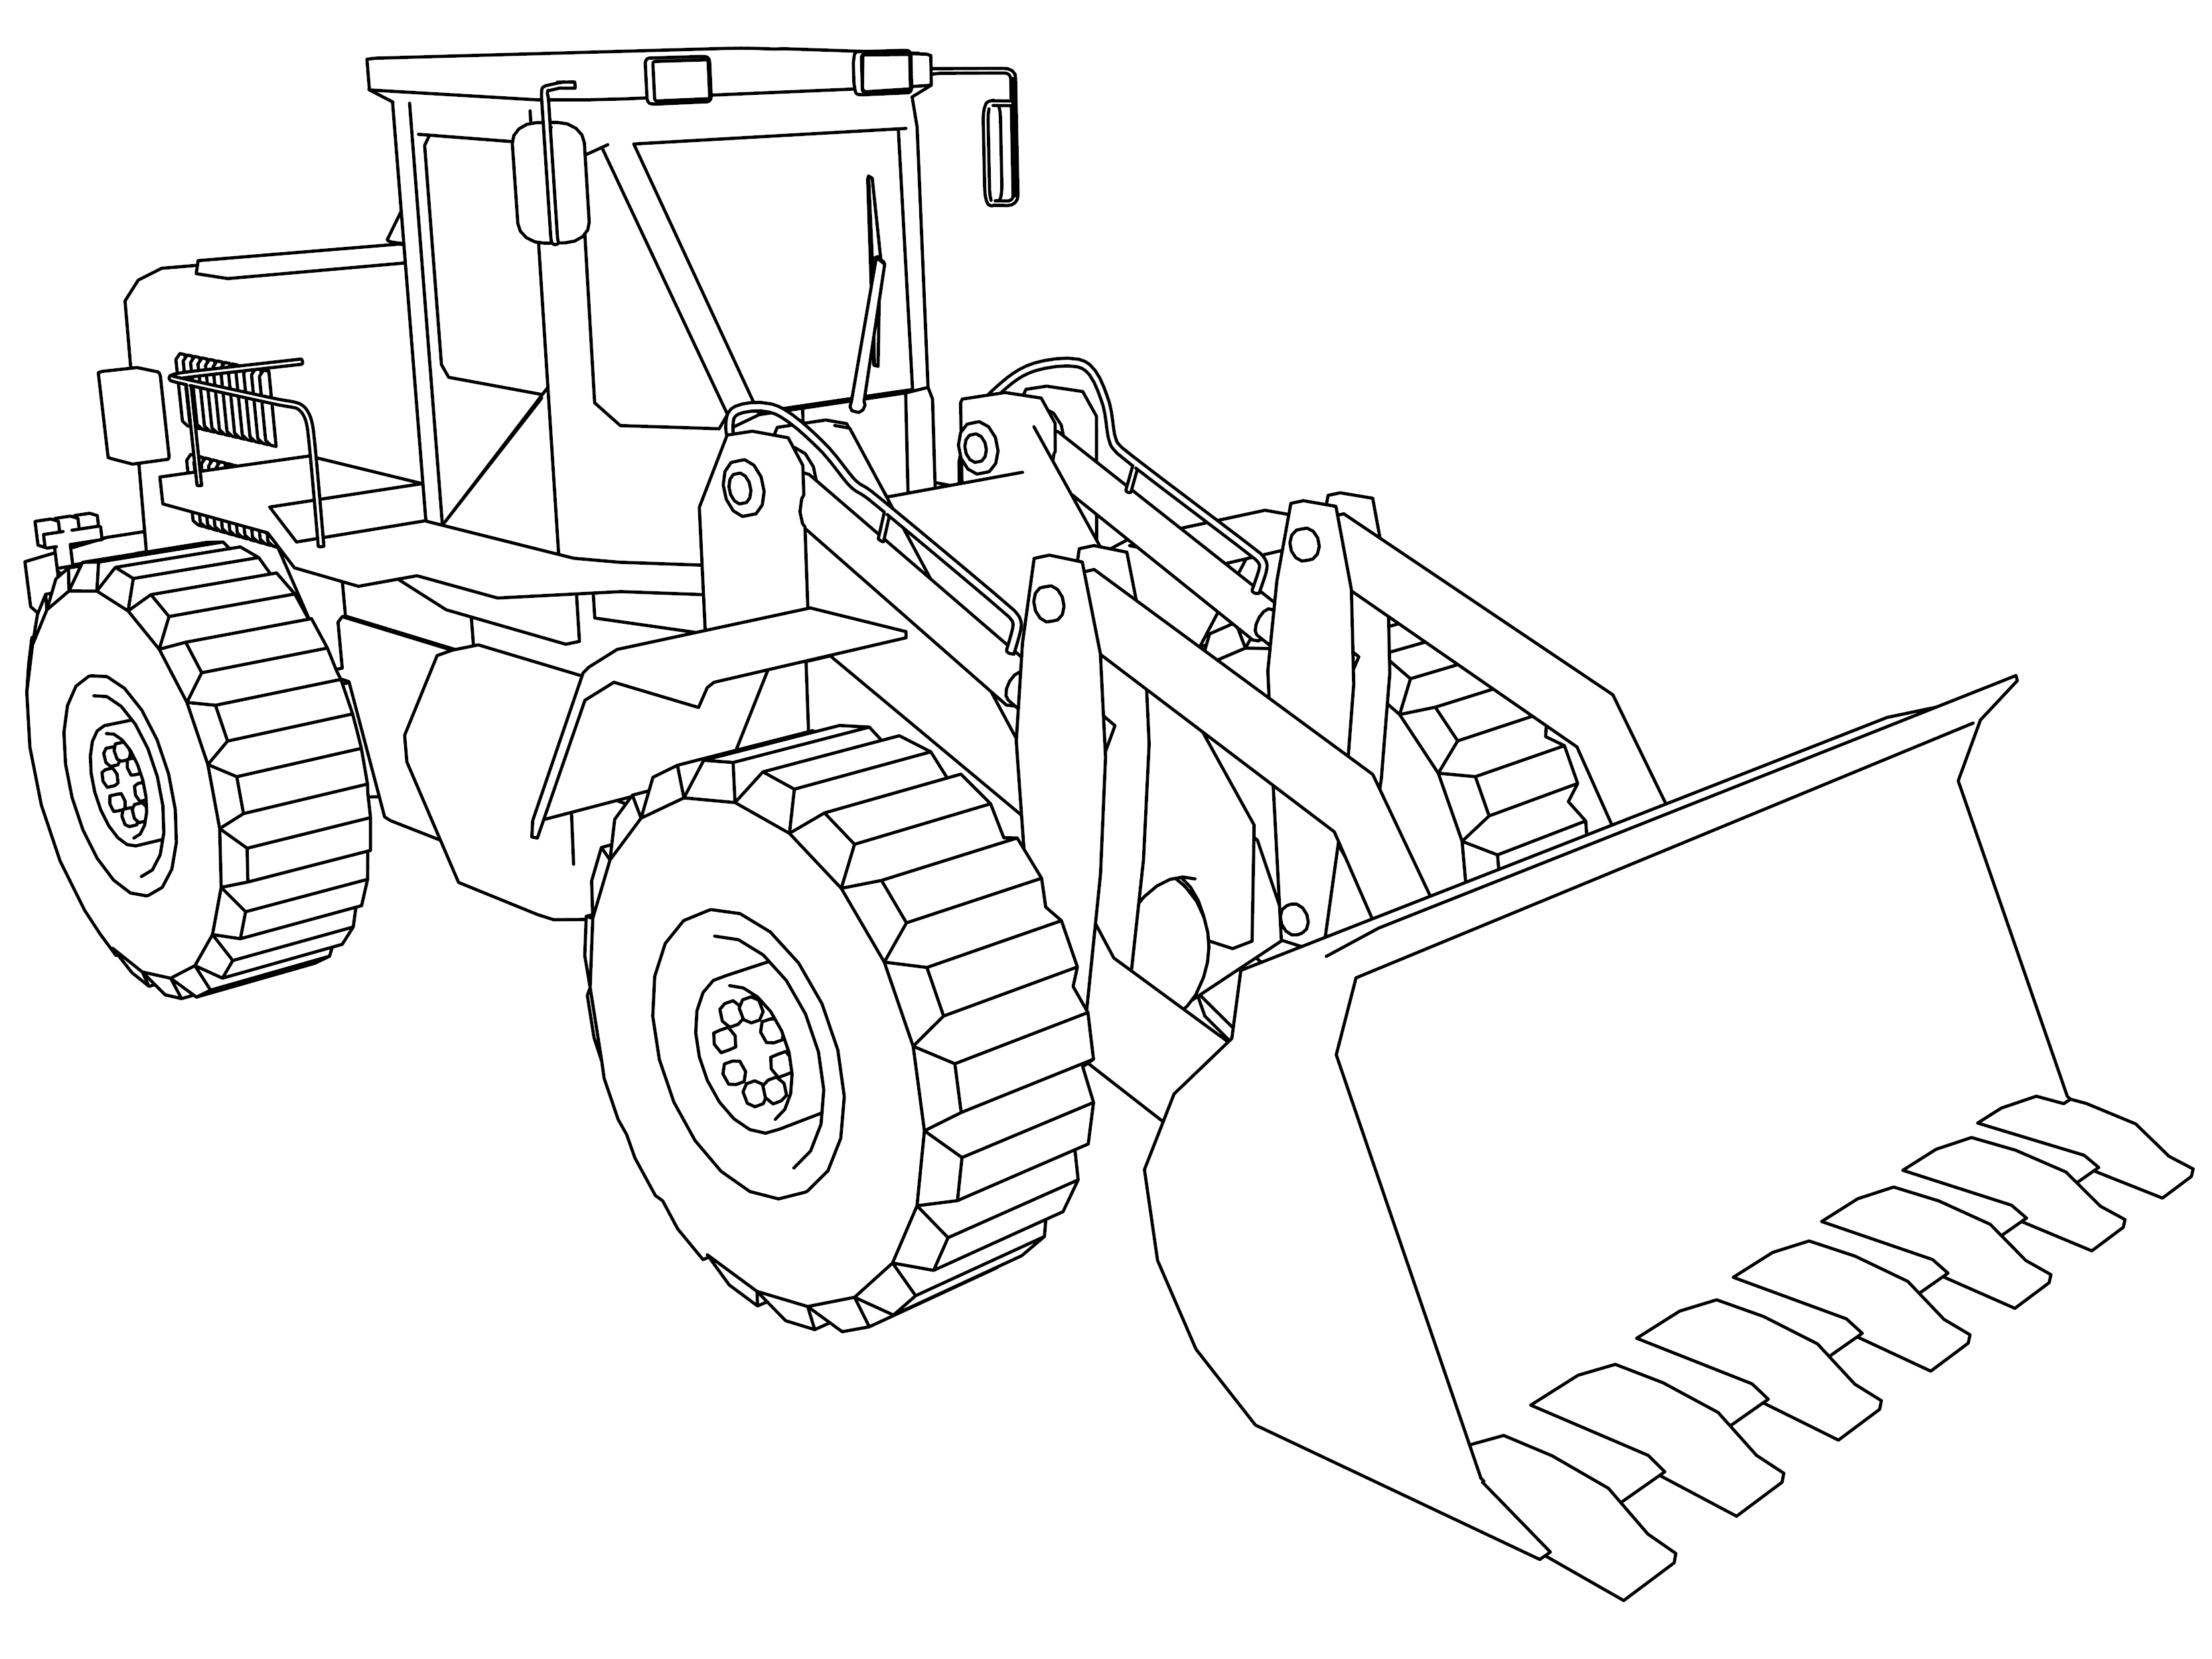 bulldozer pictures to color best stone shovel bulldozer coloring page wecoloringpagecom color to bulldozer pictures